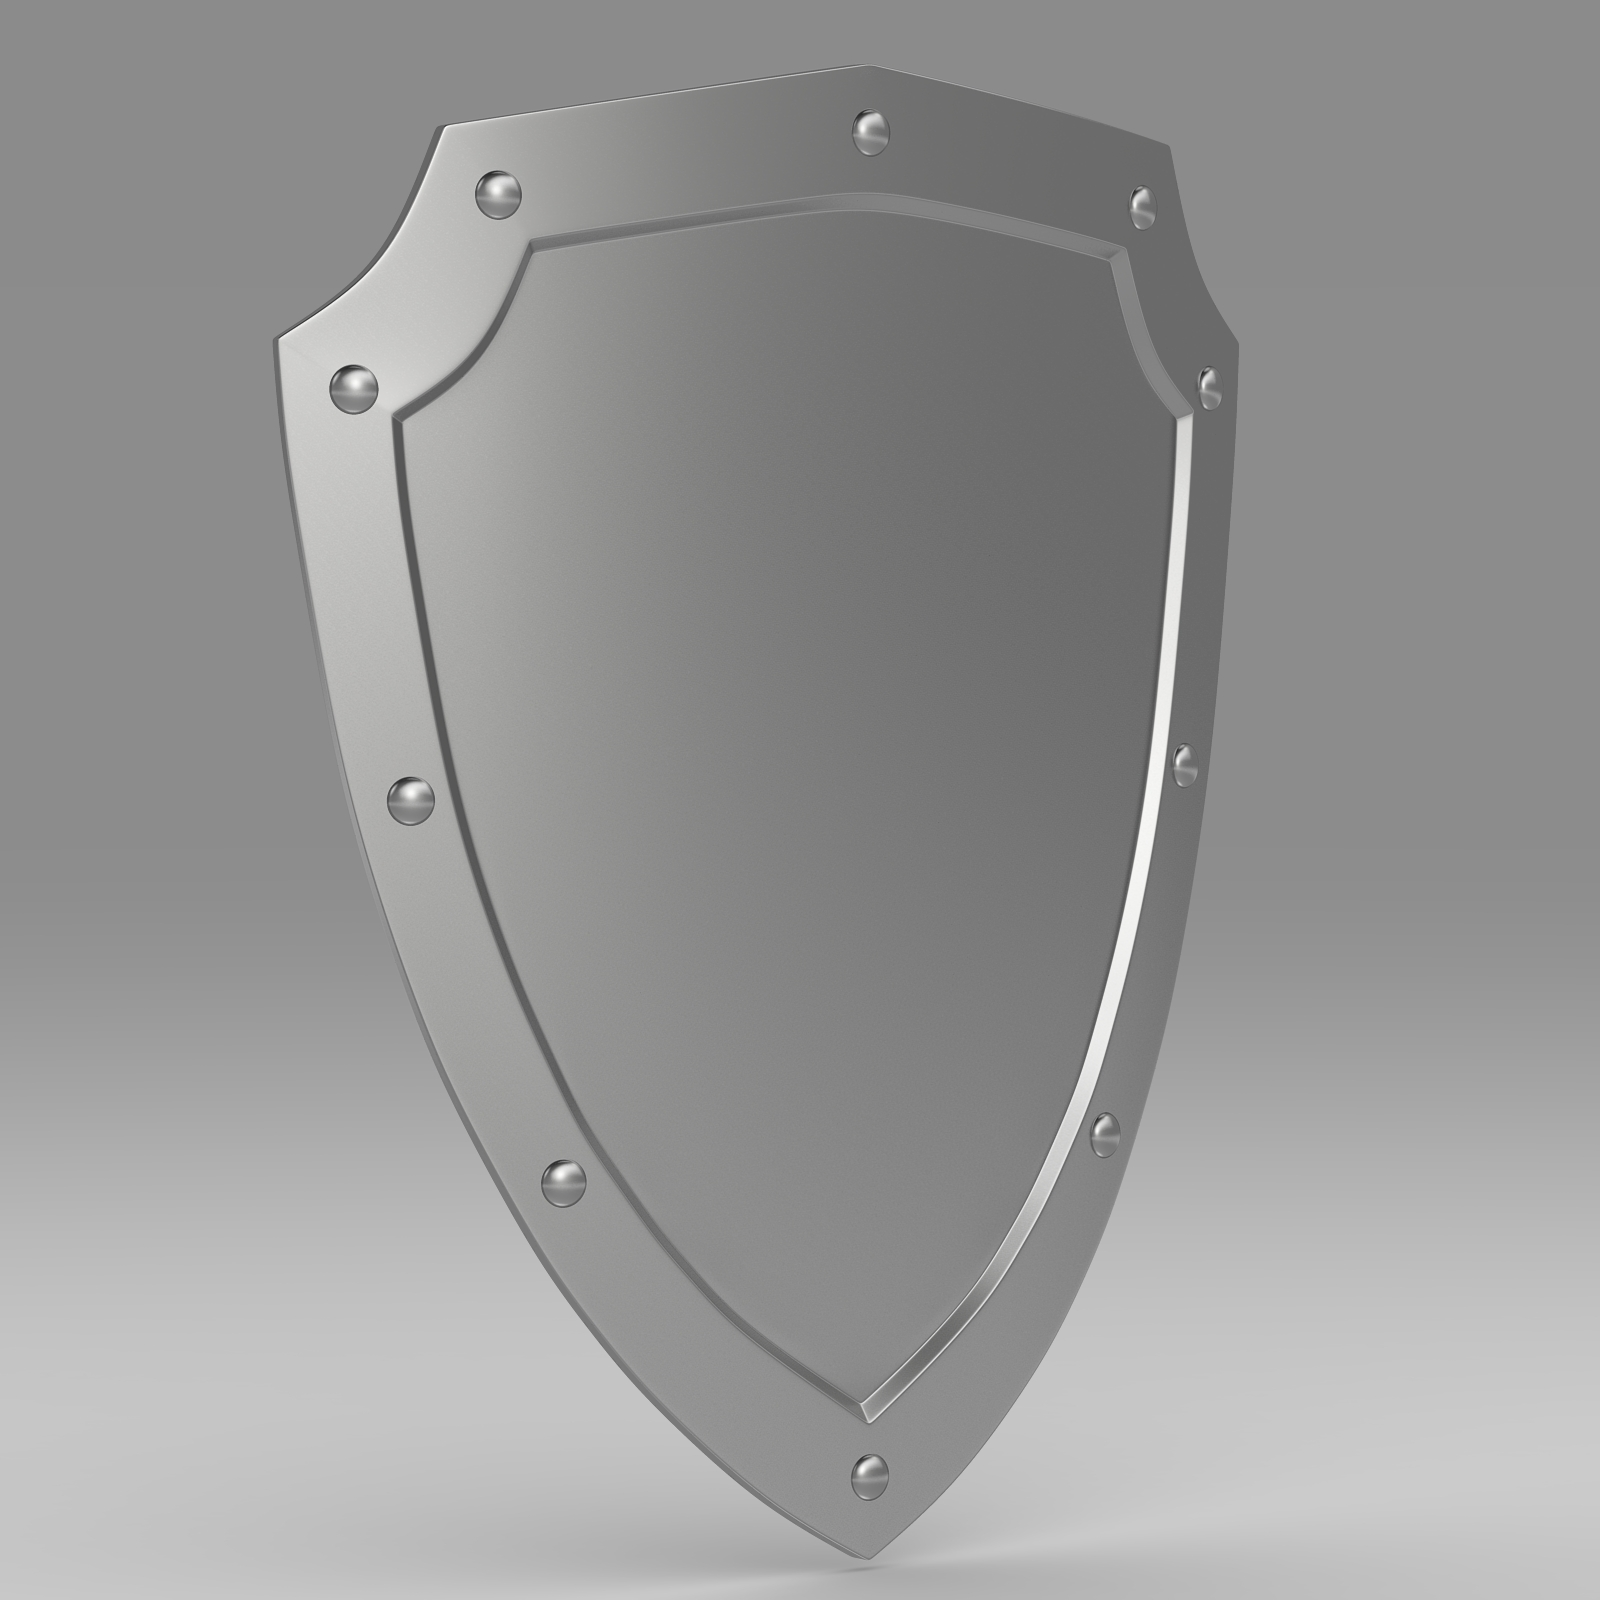 medieval shield 3d model 3ds fbx c4d lwo ma mb hrc xsi  obj 223655